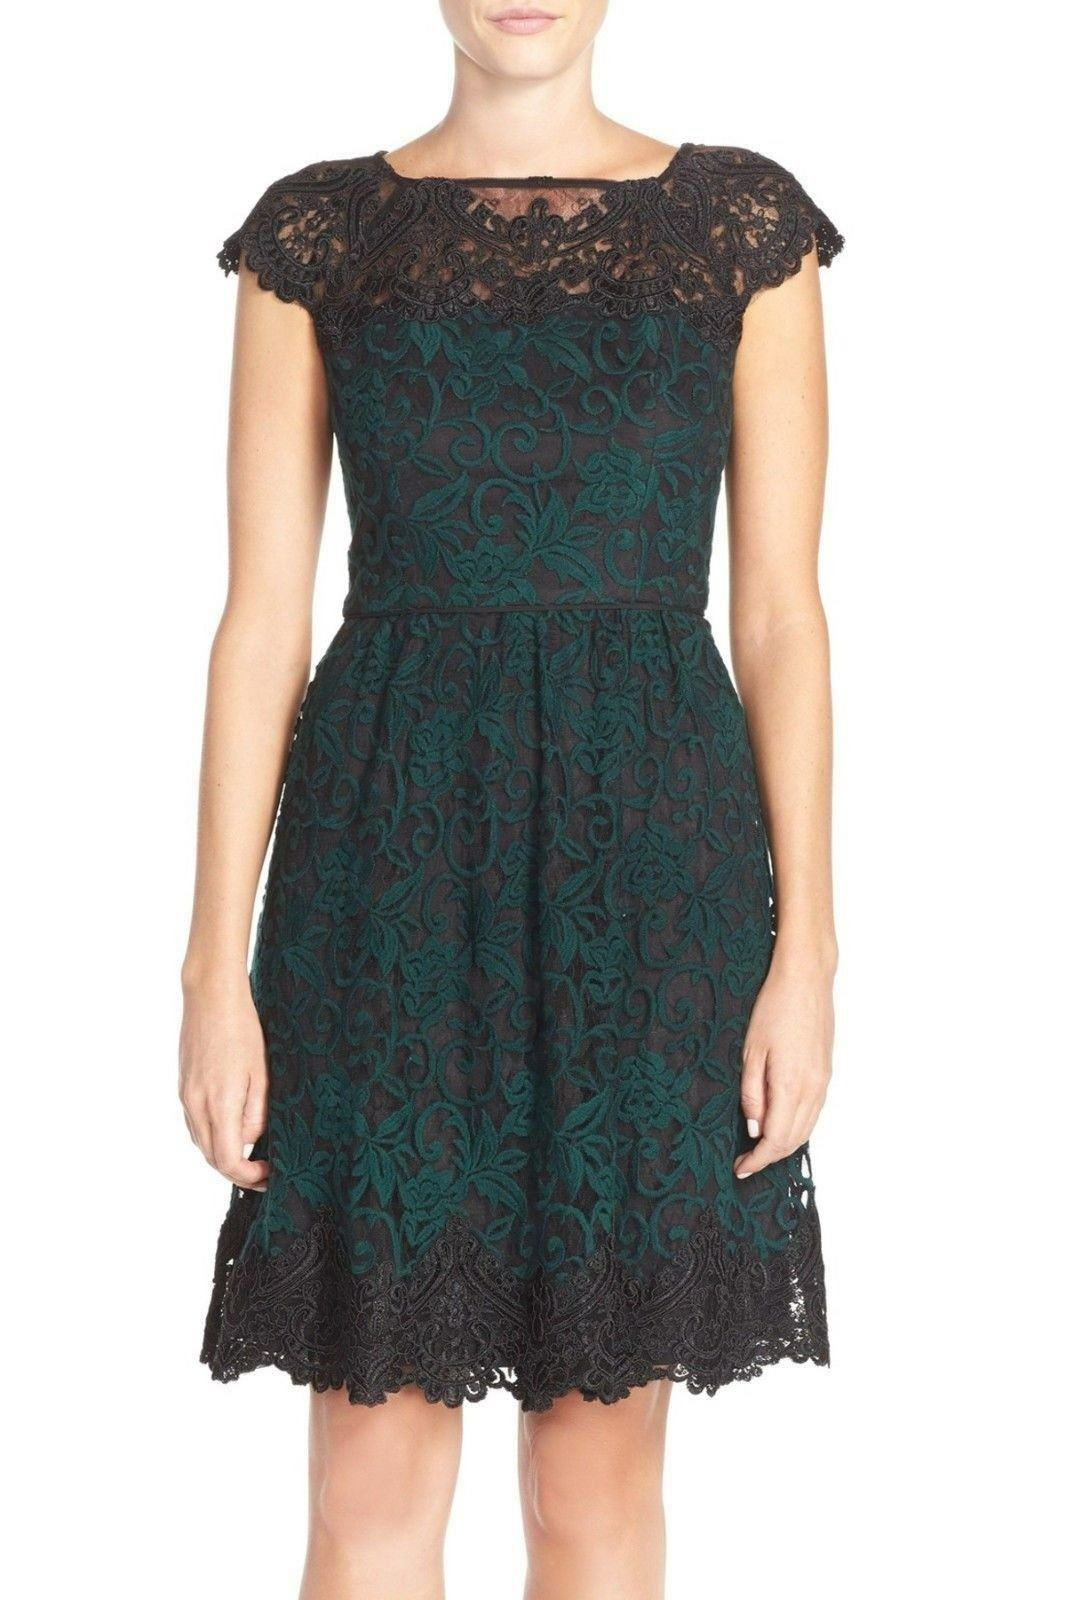 Adrianna Papell Embroiderot Lace Fit & Flare Dress schwarz Grün 16